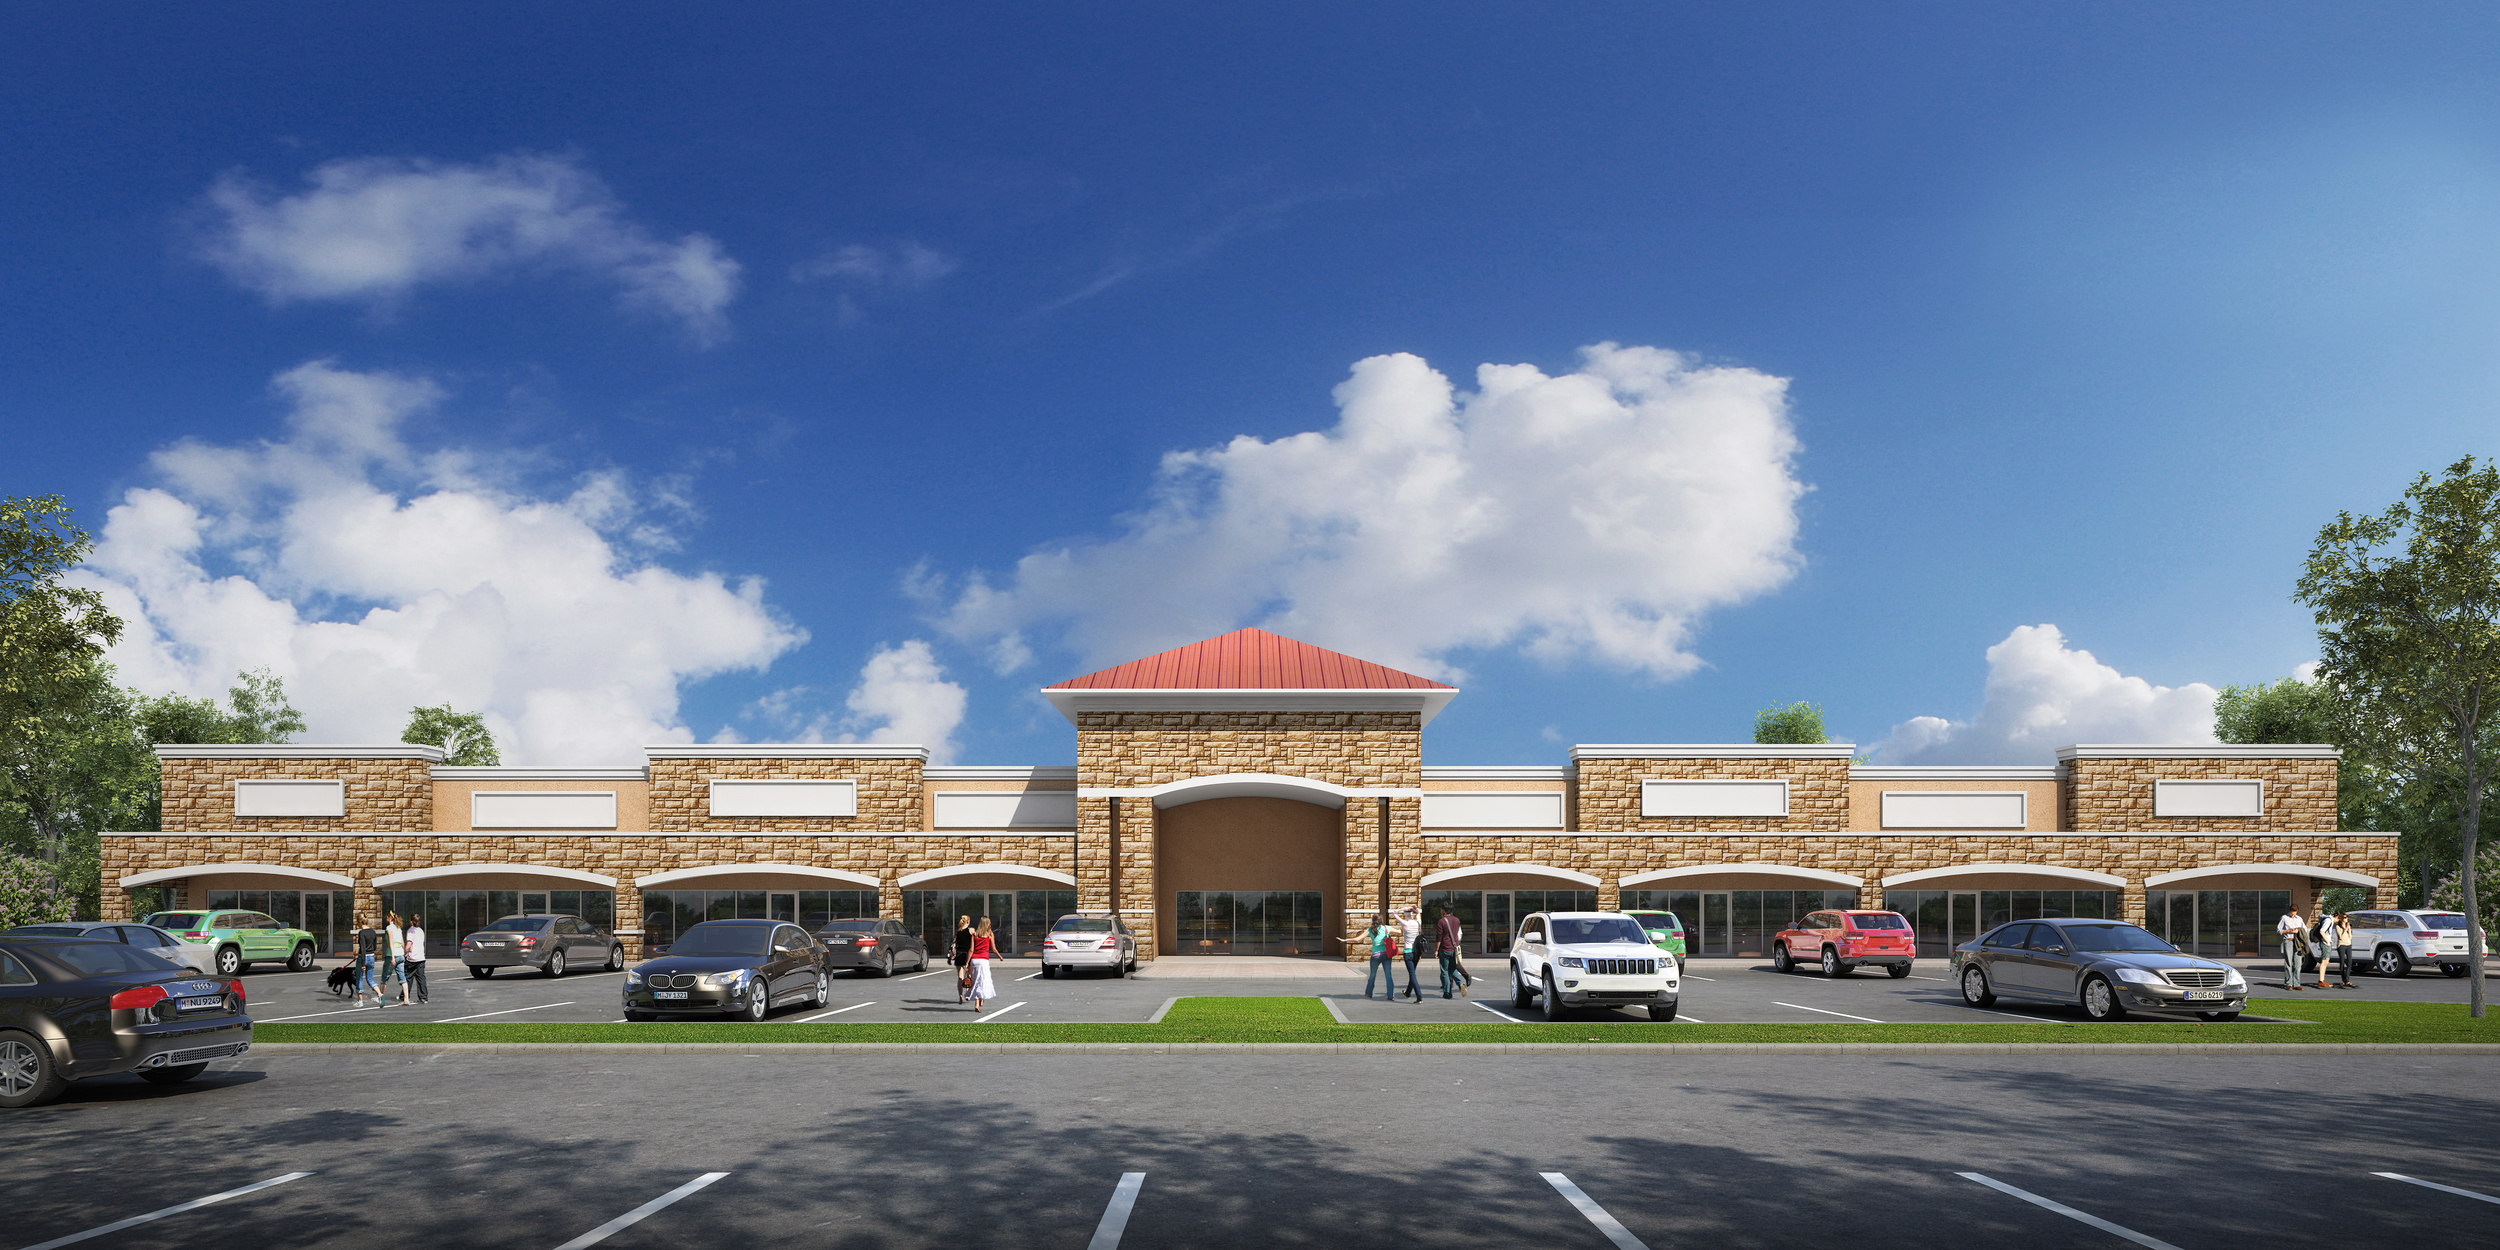 Planned Retail/Office Development   950 S Carrier Pkwy, Grand Prairie, TX